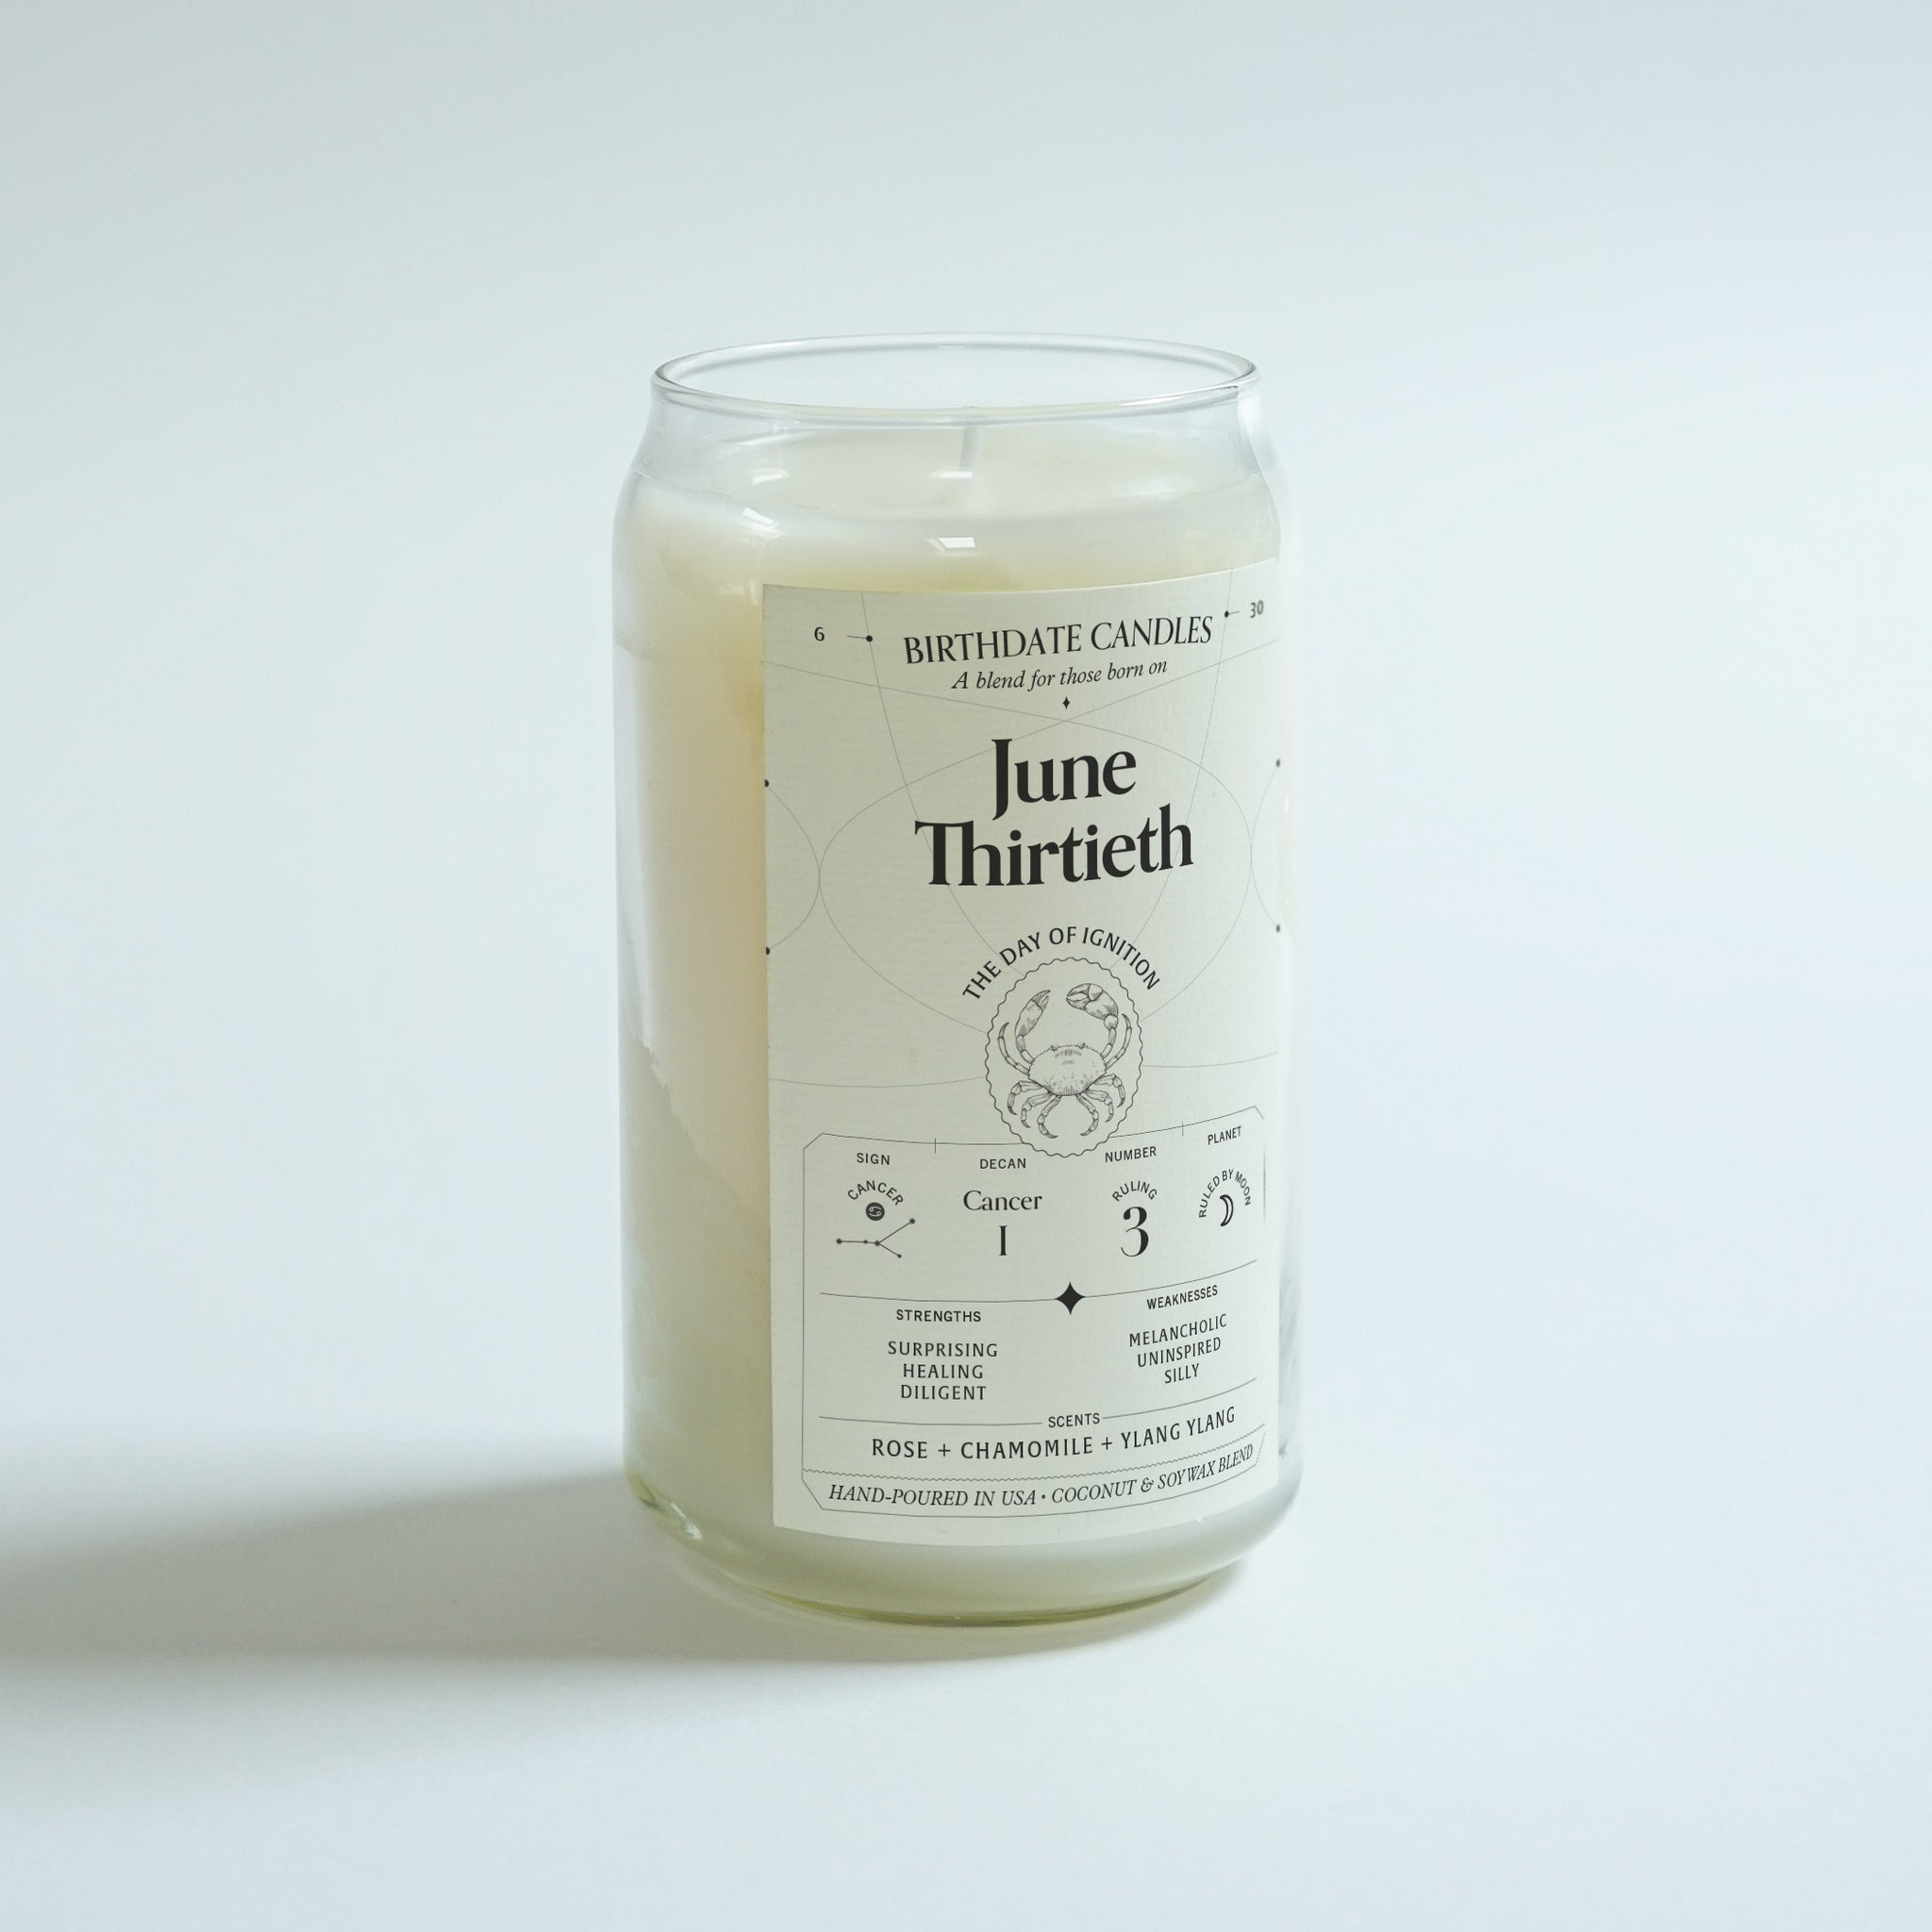 The June Thirtieth Candle